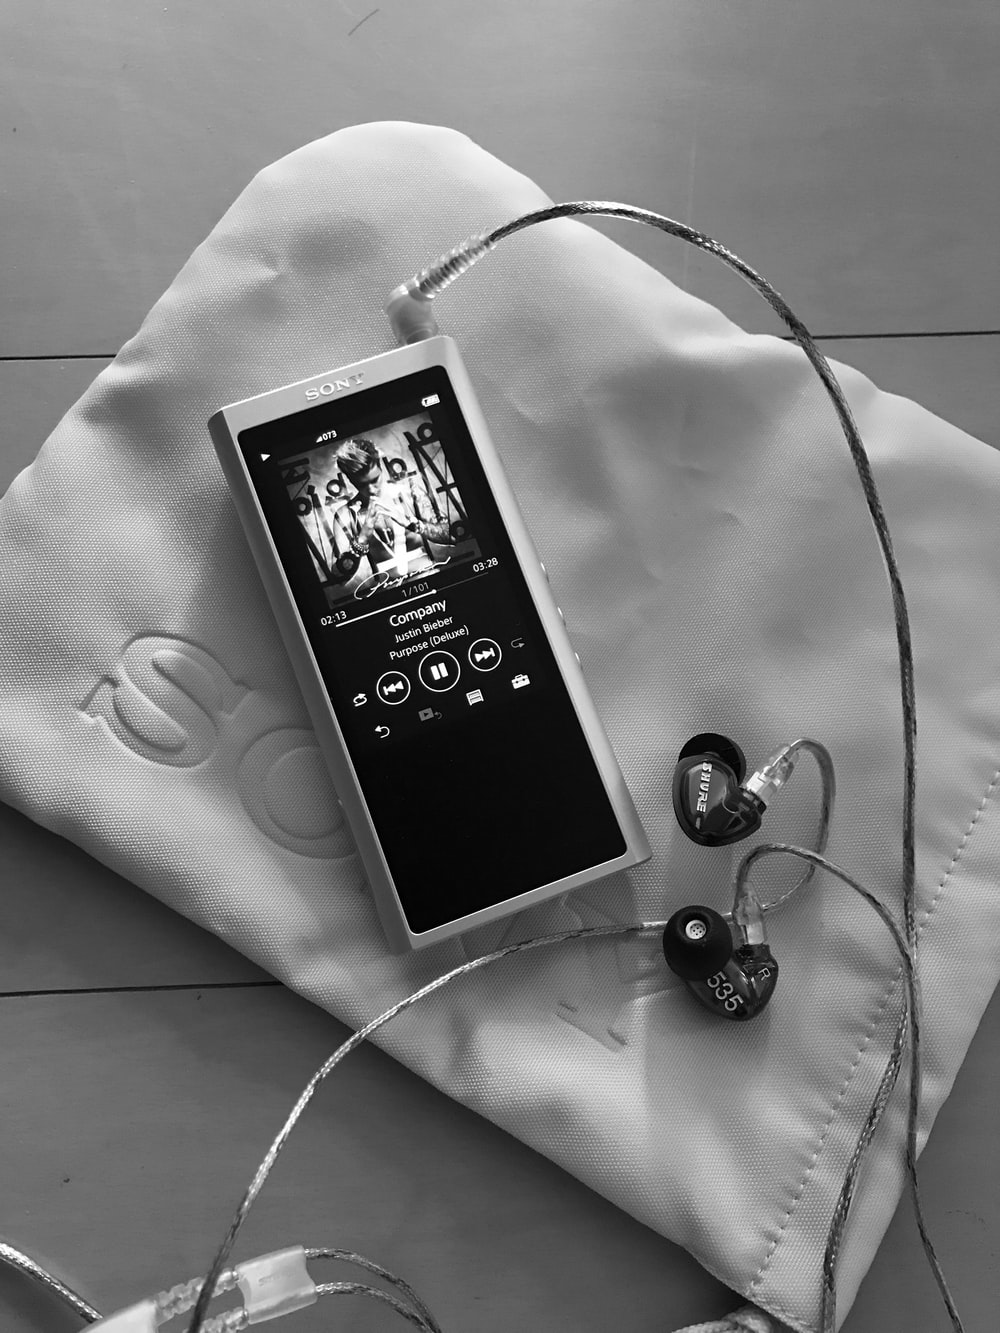 music player that is turned-on on bed